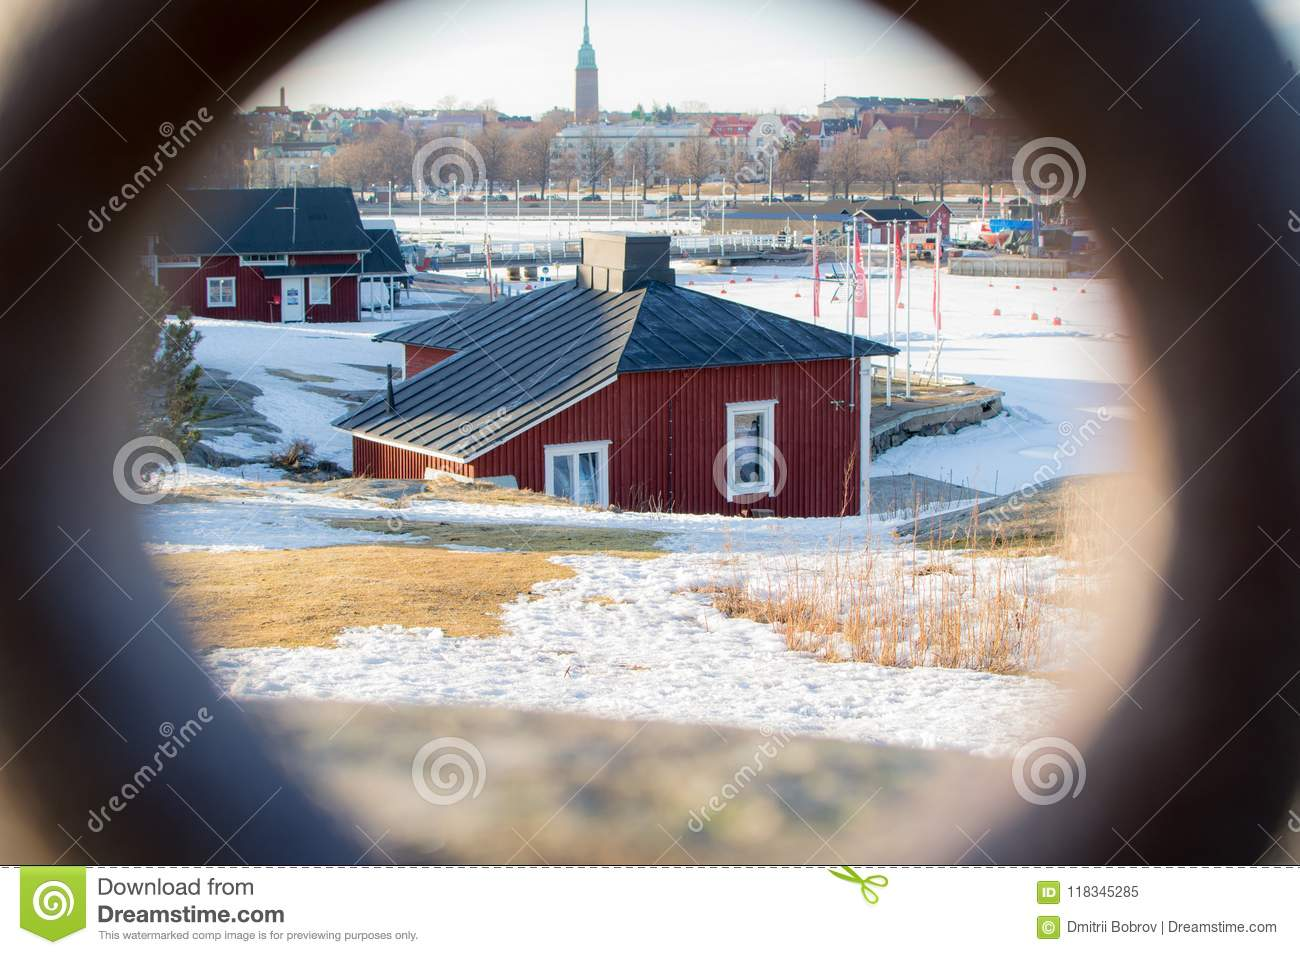 A view on a red cabin